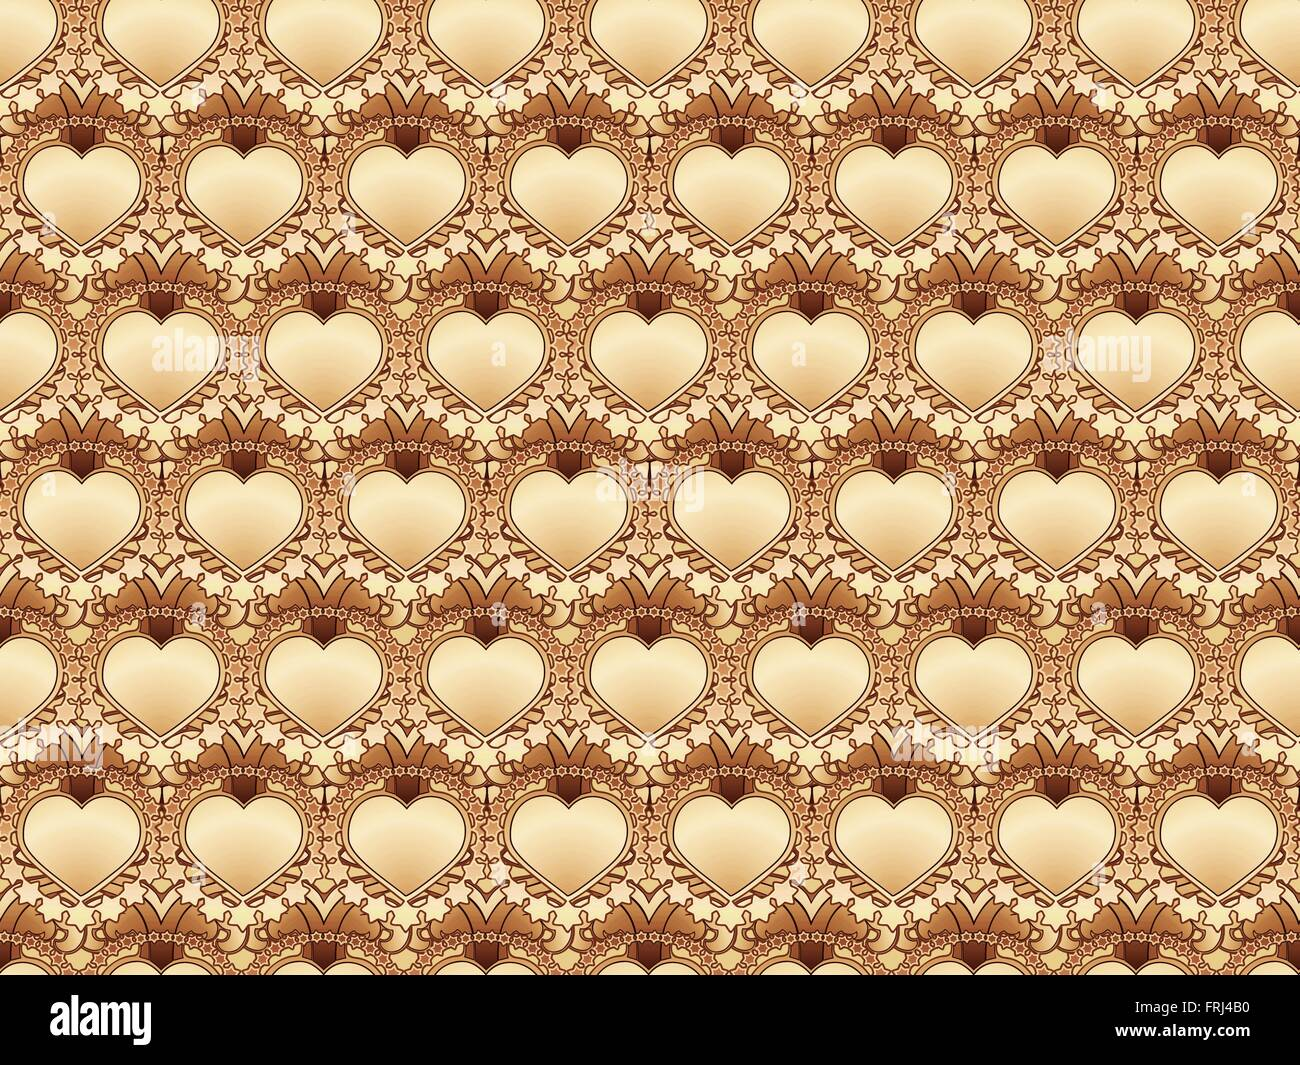 psychedelic retro pattern of hearts and stars - Stock Image